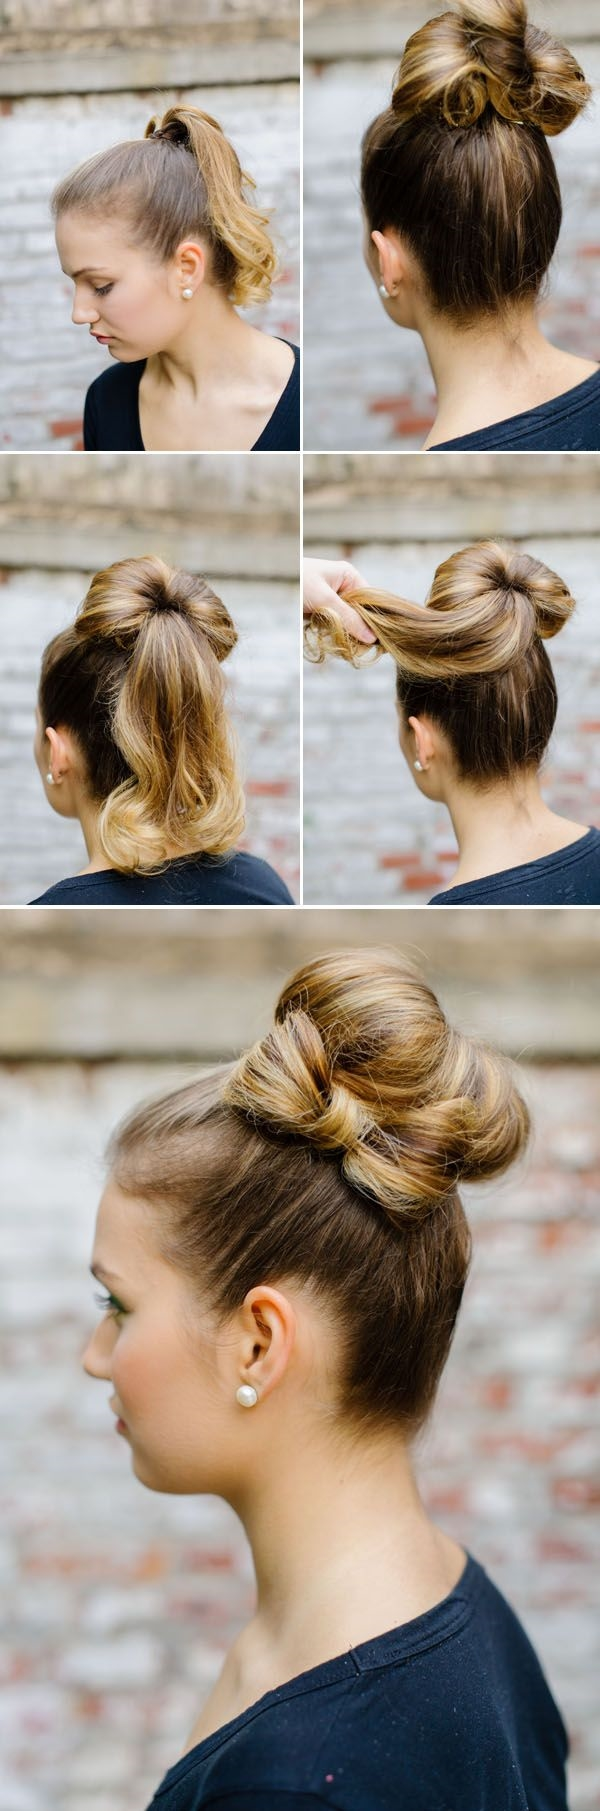 New Hairstyles for Women to try in 2016 (17)